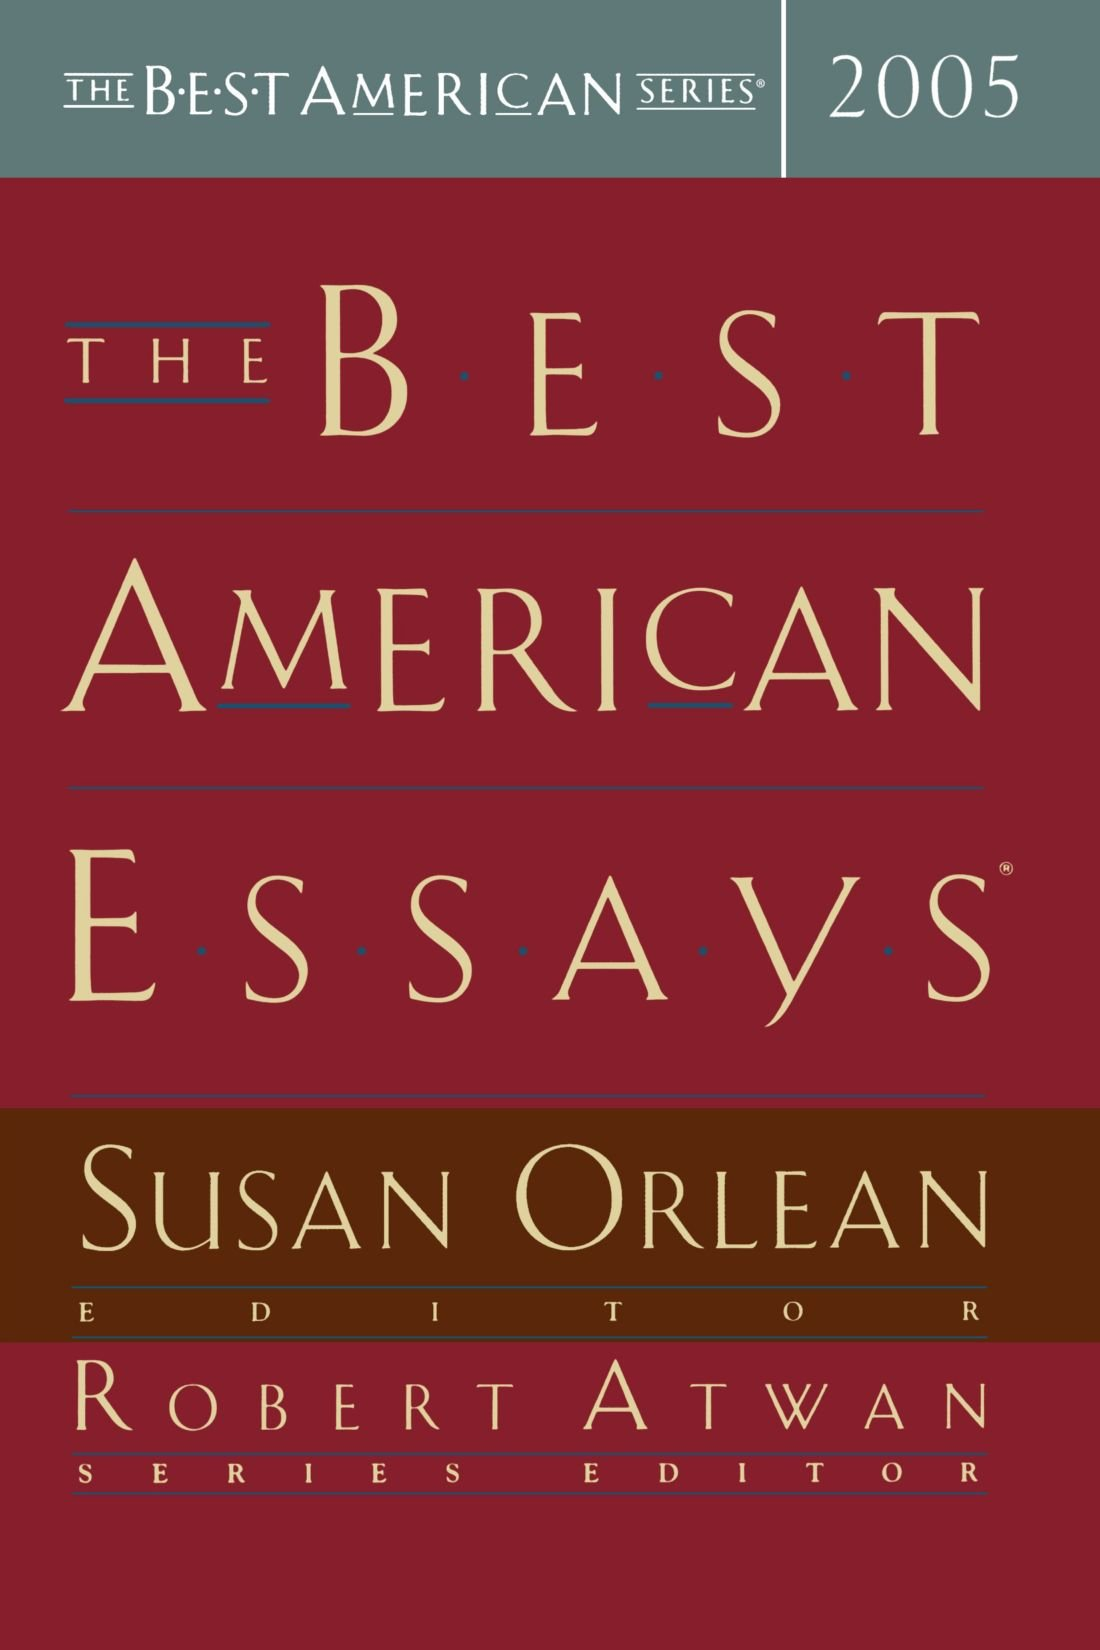 009 Essay Example 61eba7rjfxl The Best American Wonderful Essays Of Century Table Contents 2013 Pdf Download Full